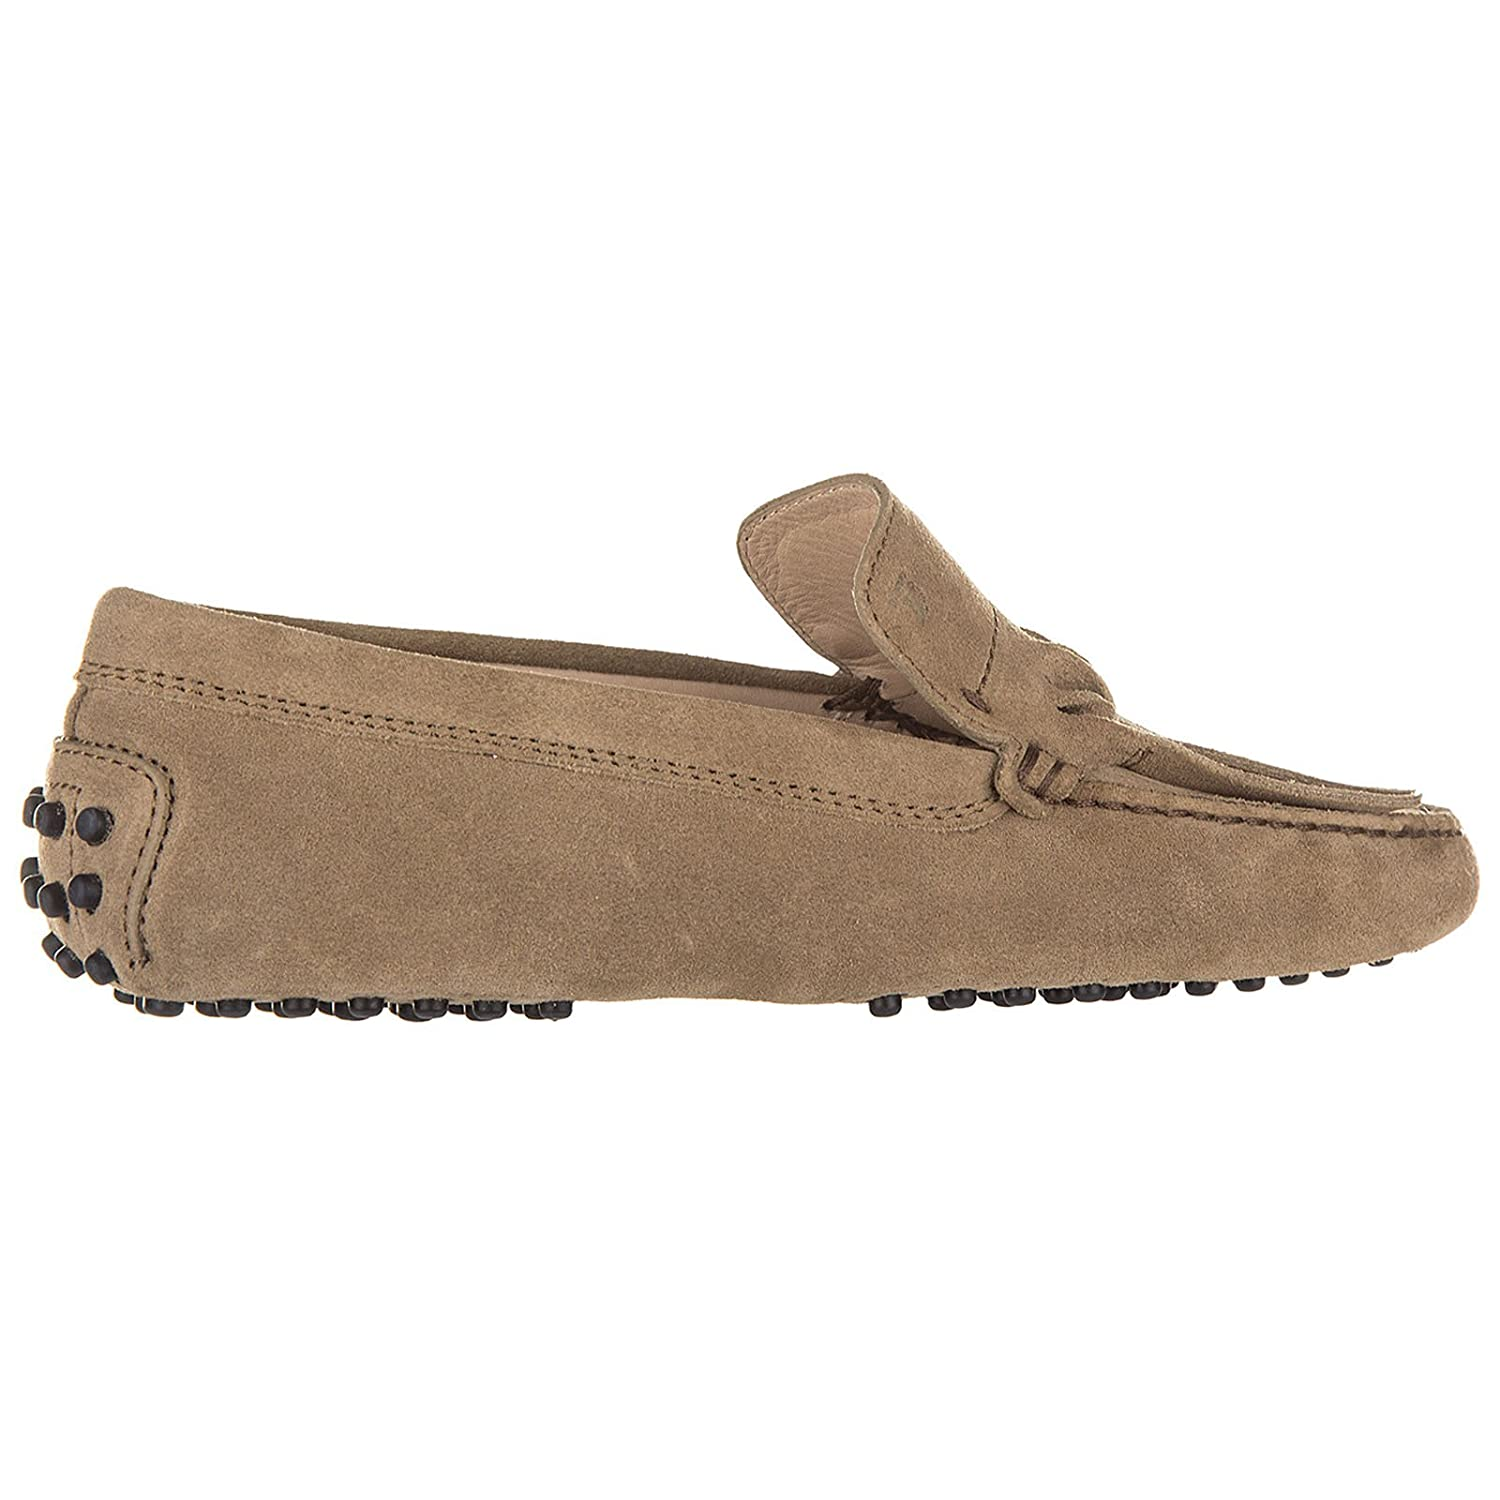 Amazon.com | Tods Women Gommino Moccasins Marrone 5 US | Loafers & Slip-Ons